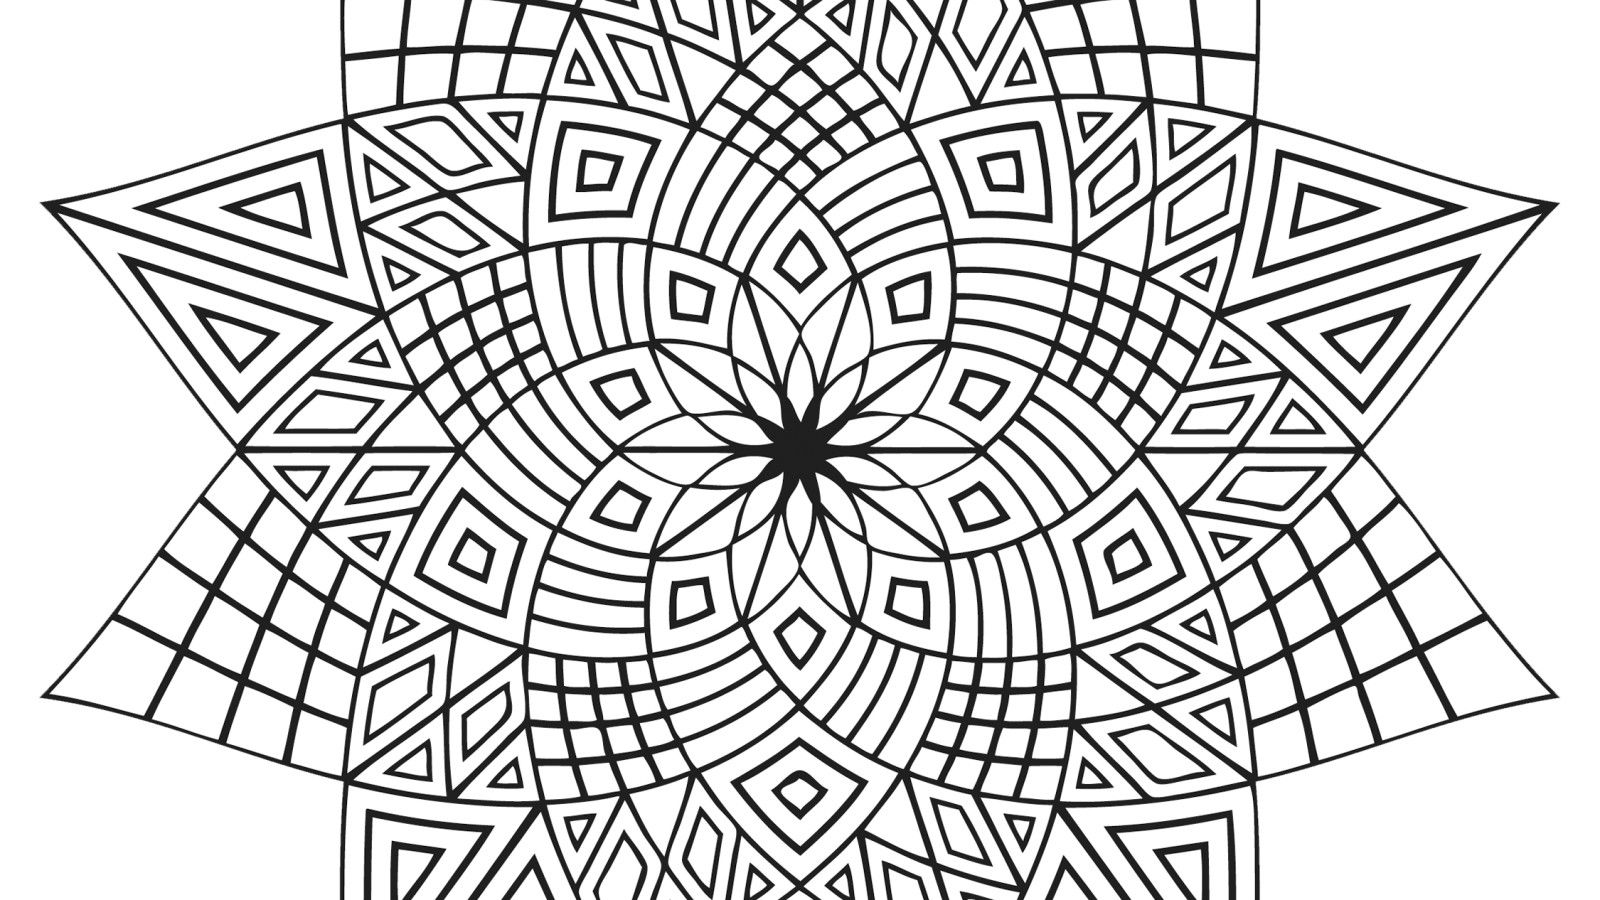 islamic art patterns to colour islamic pattern coloring page free printable coloring pages colour art islamic patterns to